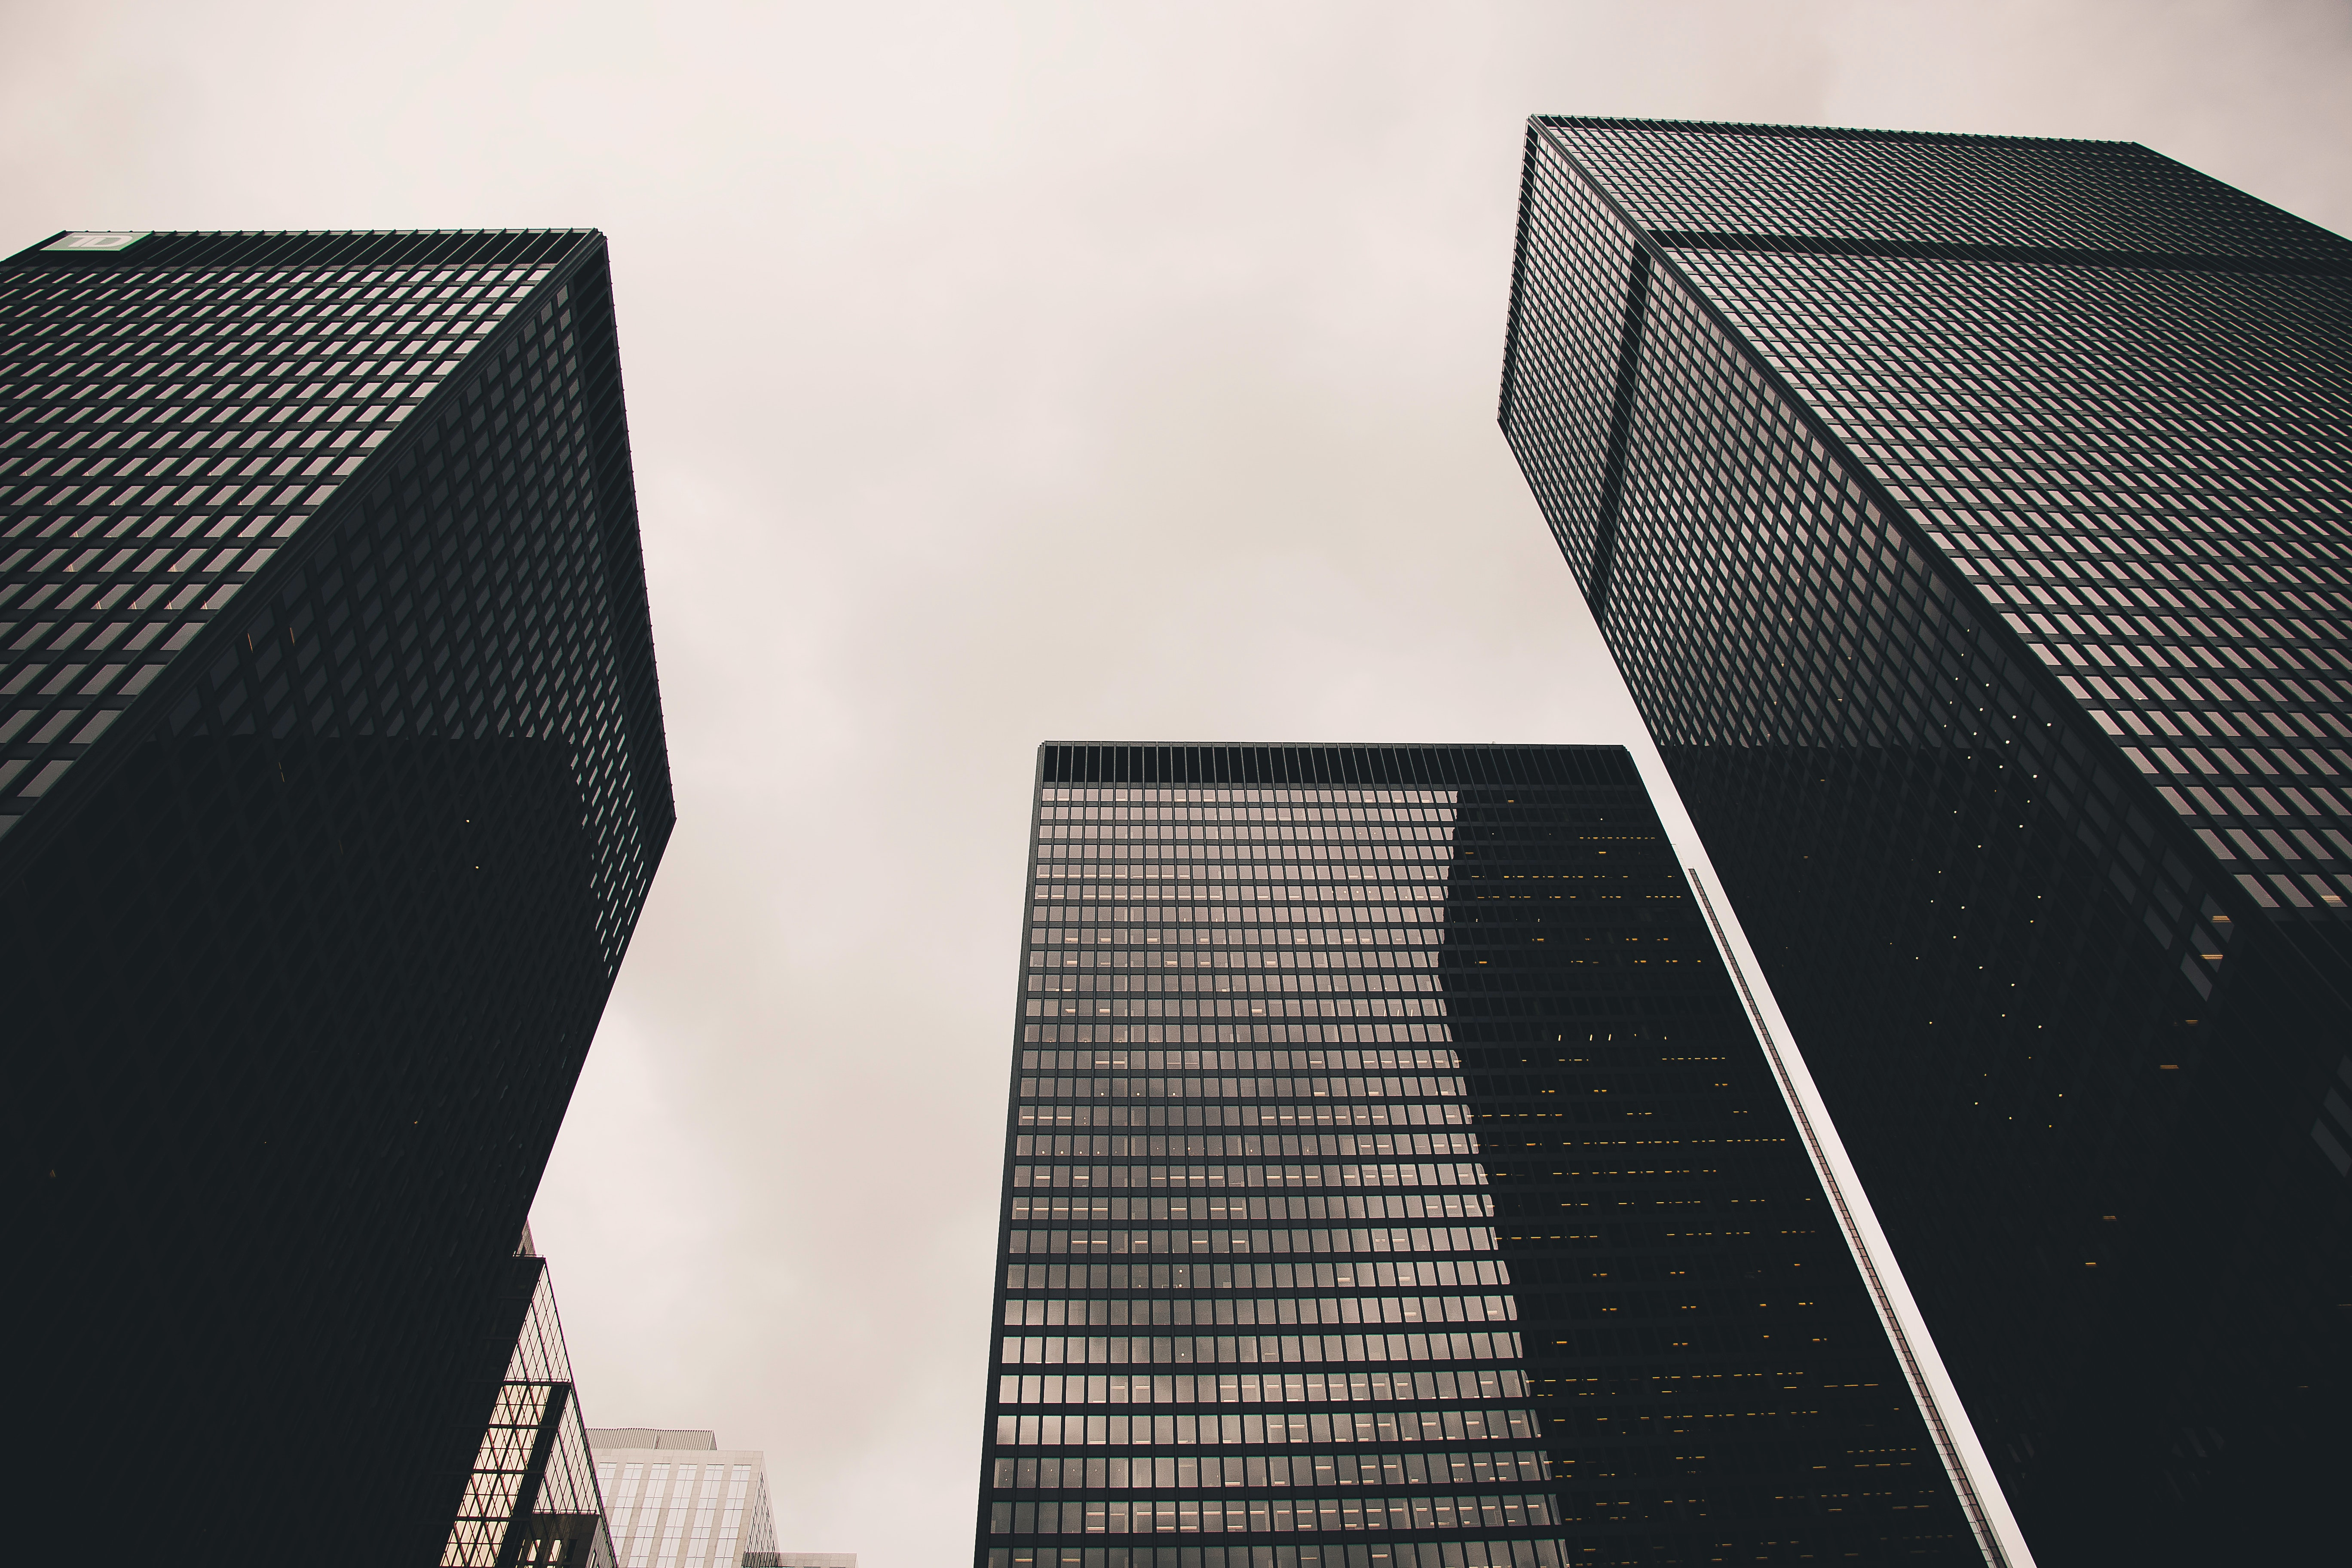 Low angle photography of black high rise building under nimbus clouds background